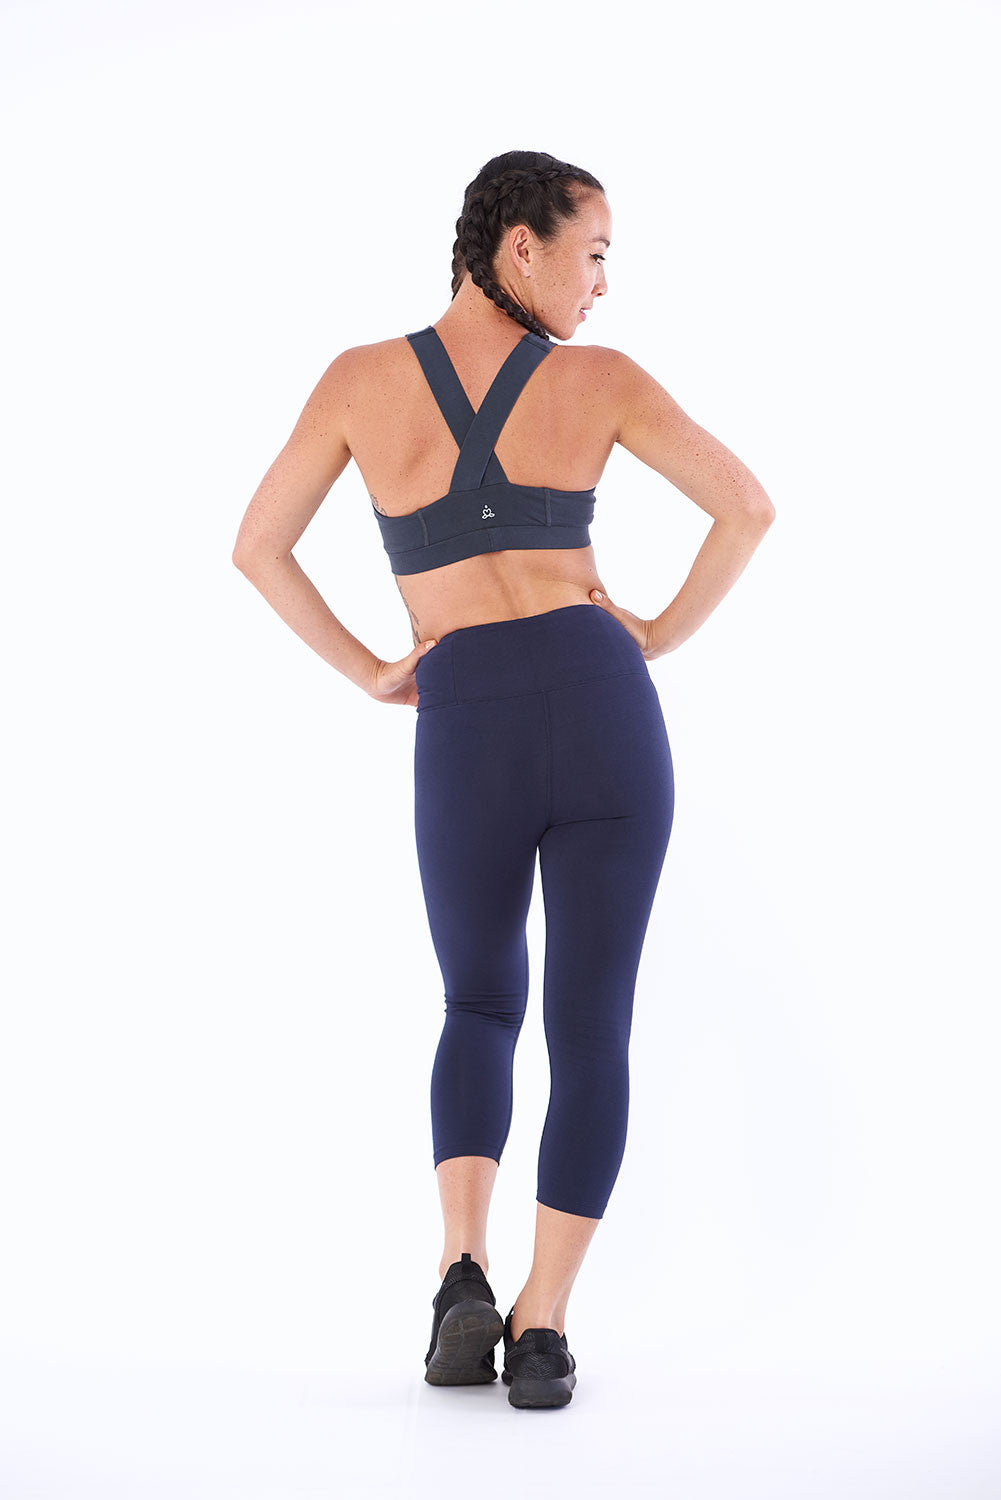 Byron Bay yoga tights organic cotton